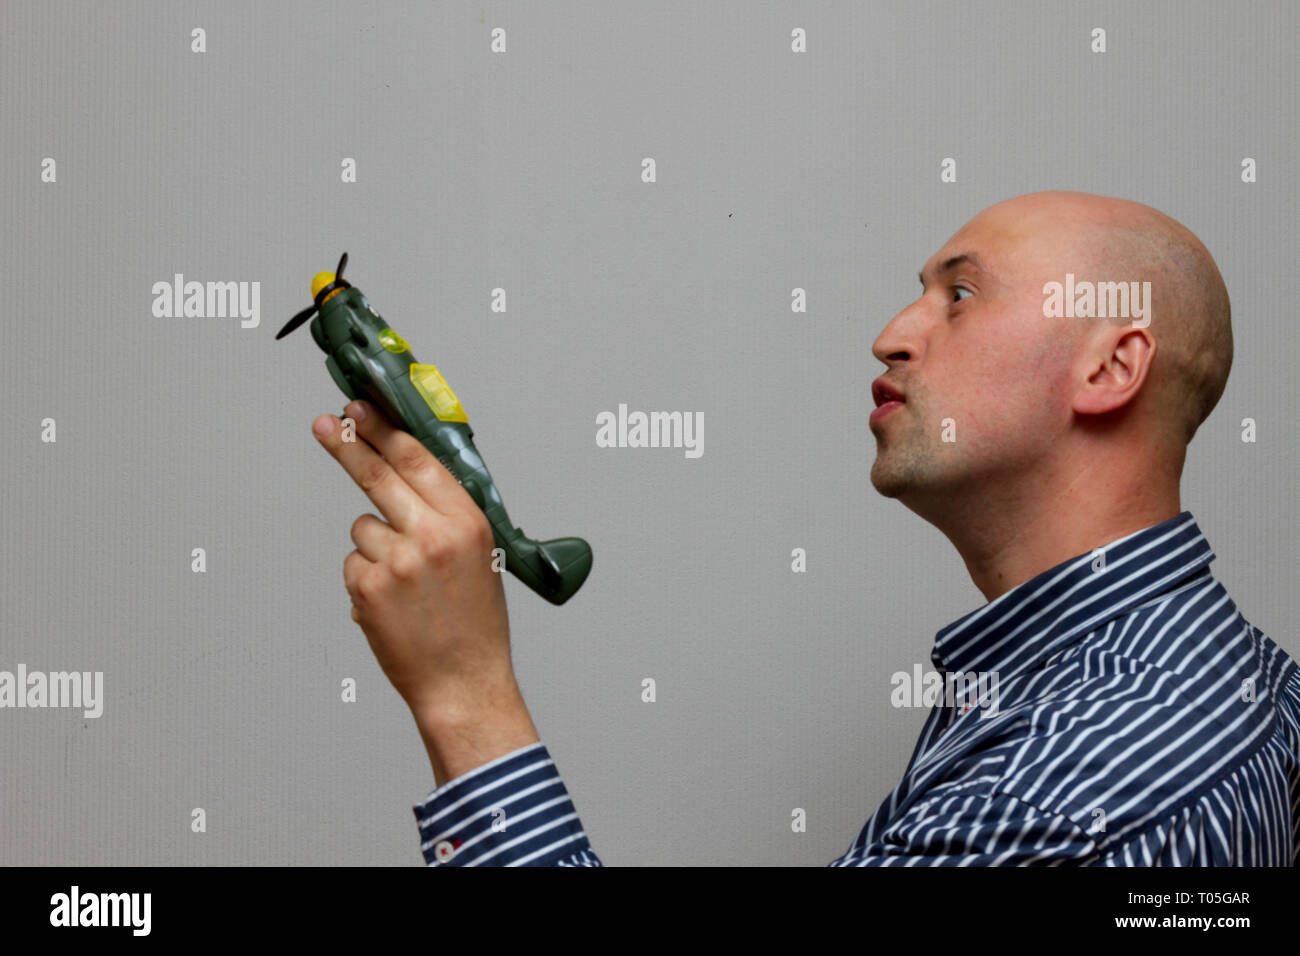 man holding a paper airplane and dreaming aboyt flying on a gray background Stock Photo